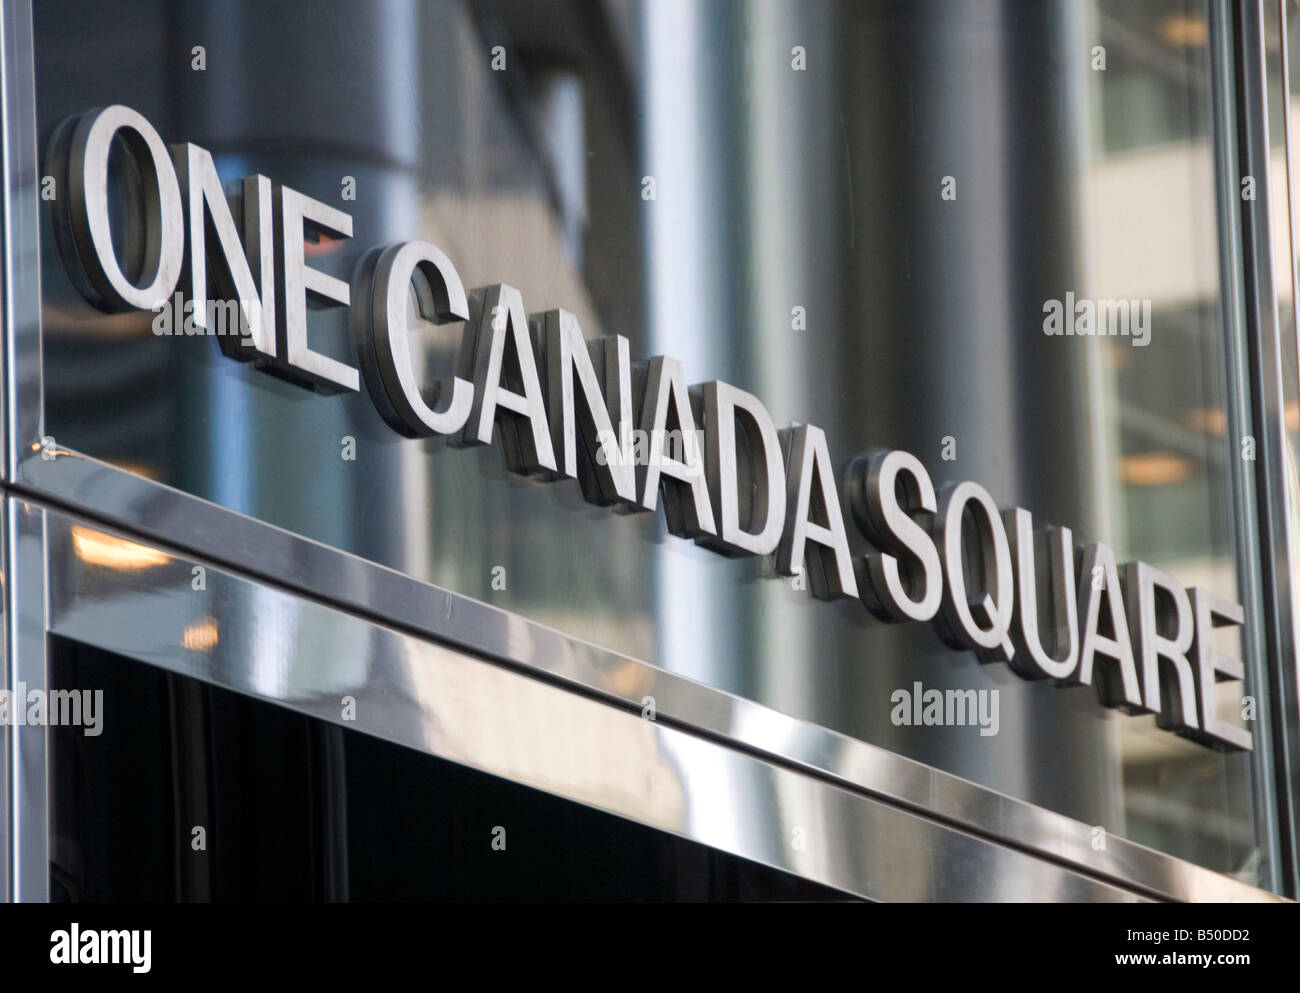 One Canada Square in Canary Wharf London - Stock Image